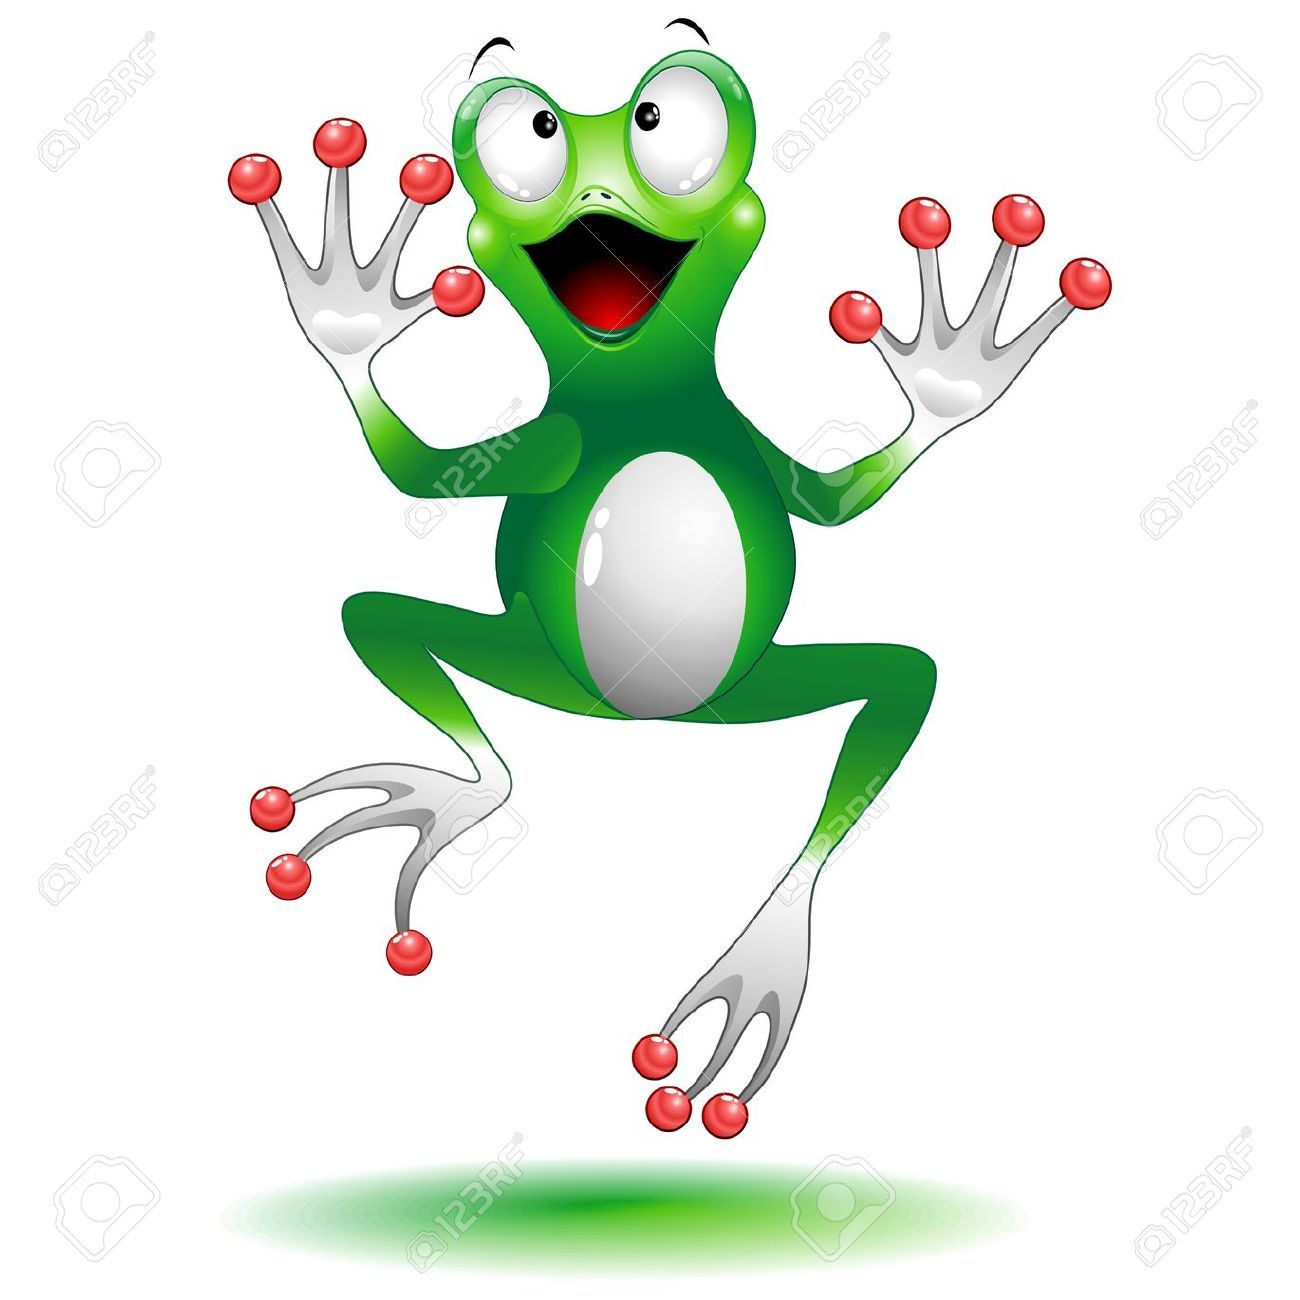 Frog Jump images.